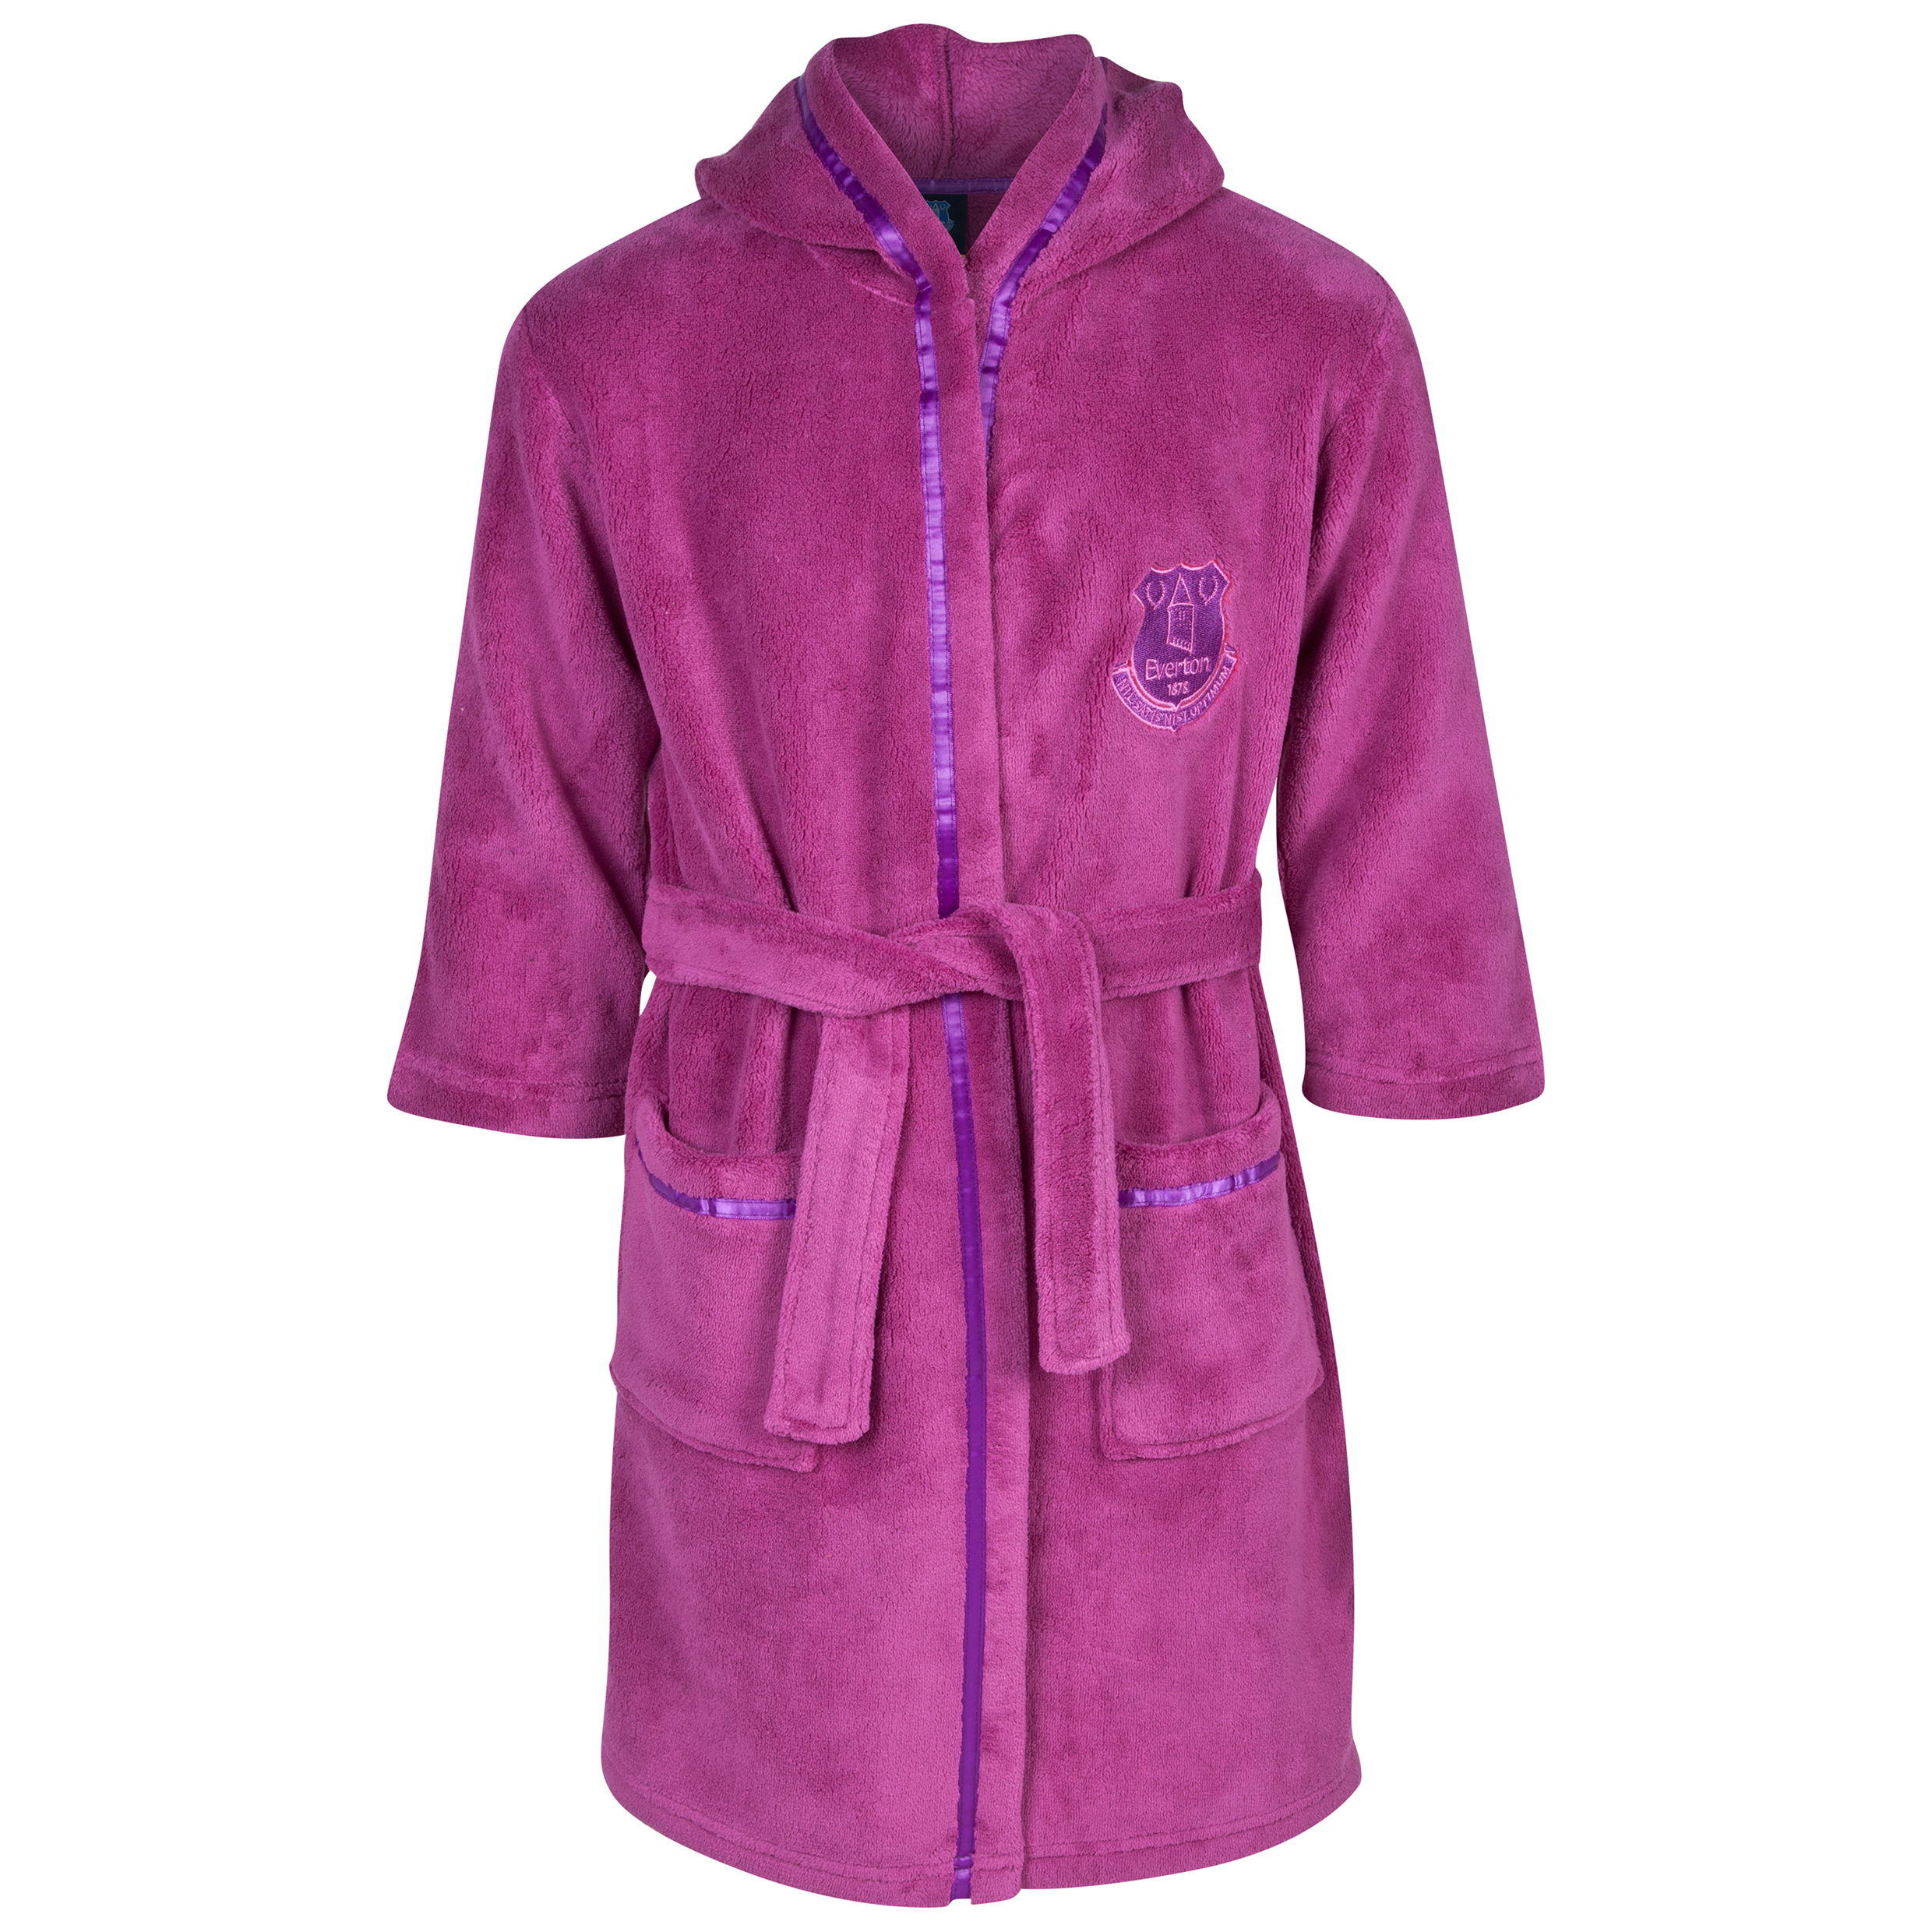 Everton Robe - Magenta Pink - Girls